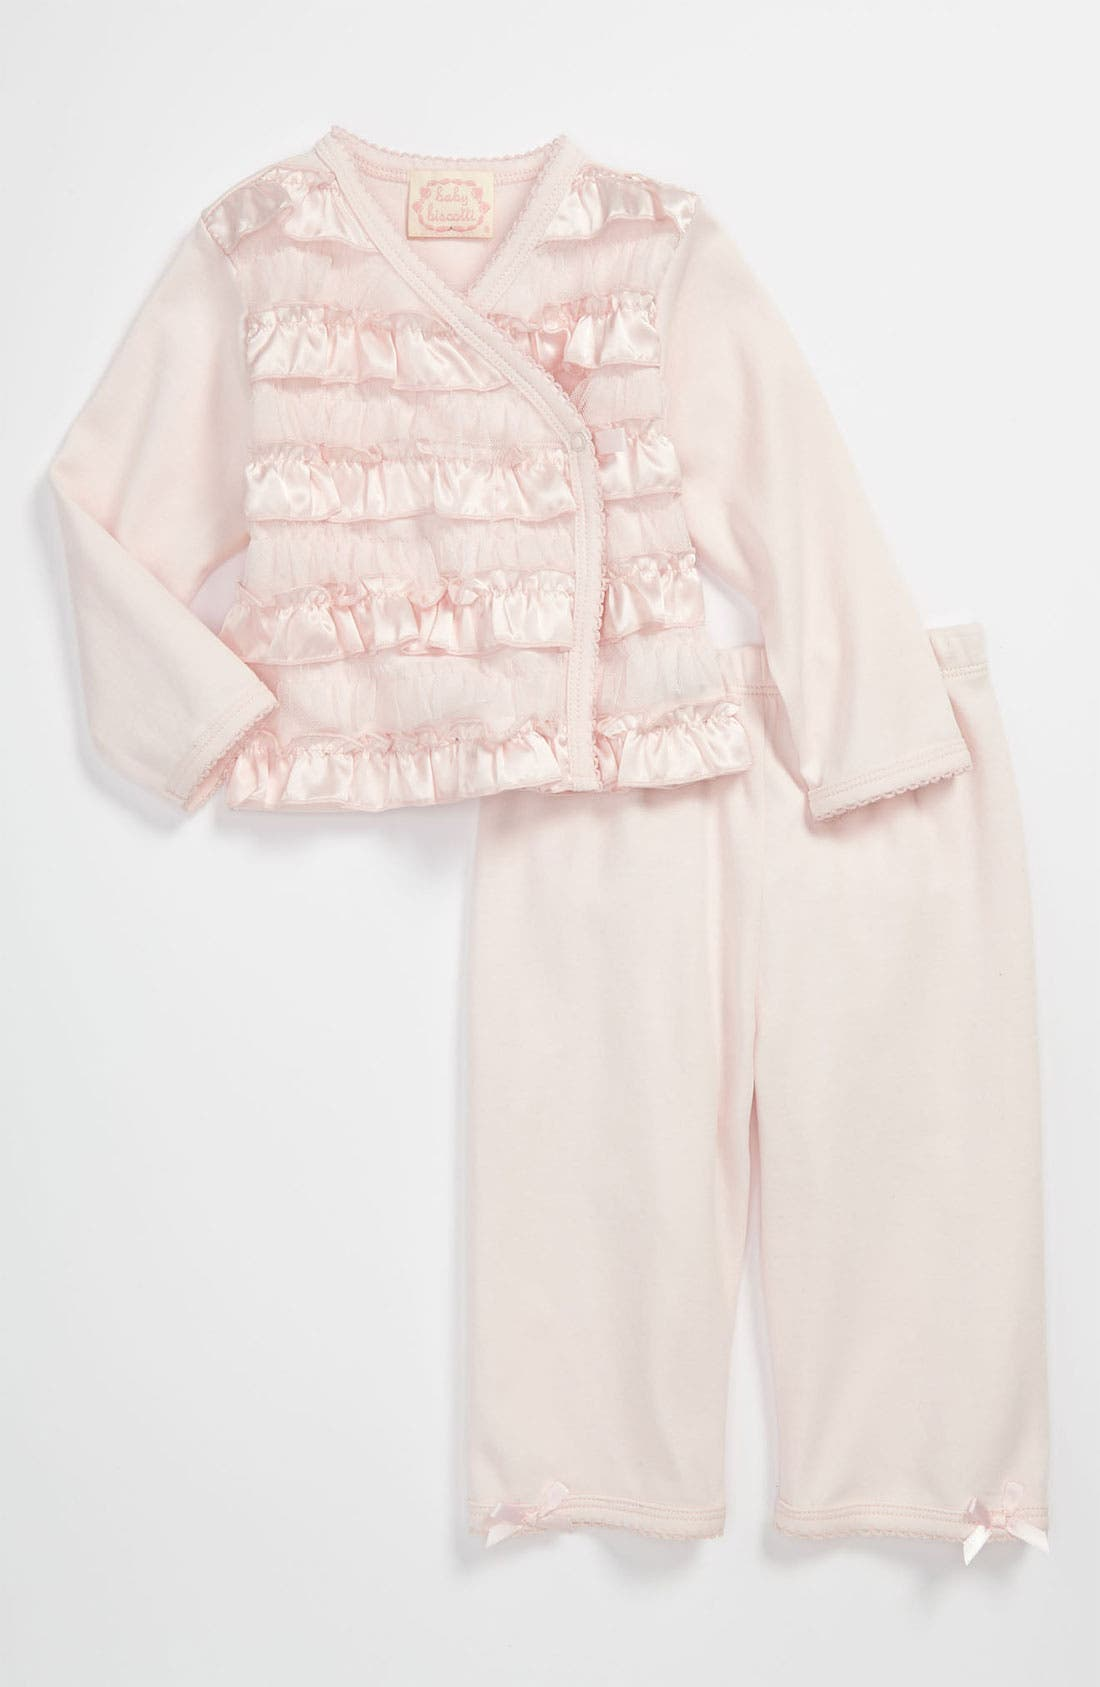 Alternate Image 1 Selected - Biscotti Ruffle Top & Pants (Baby)